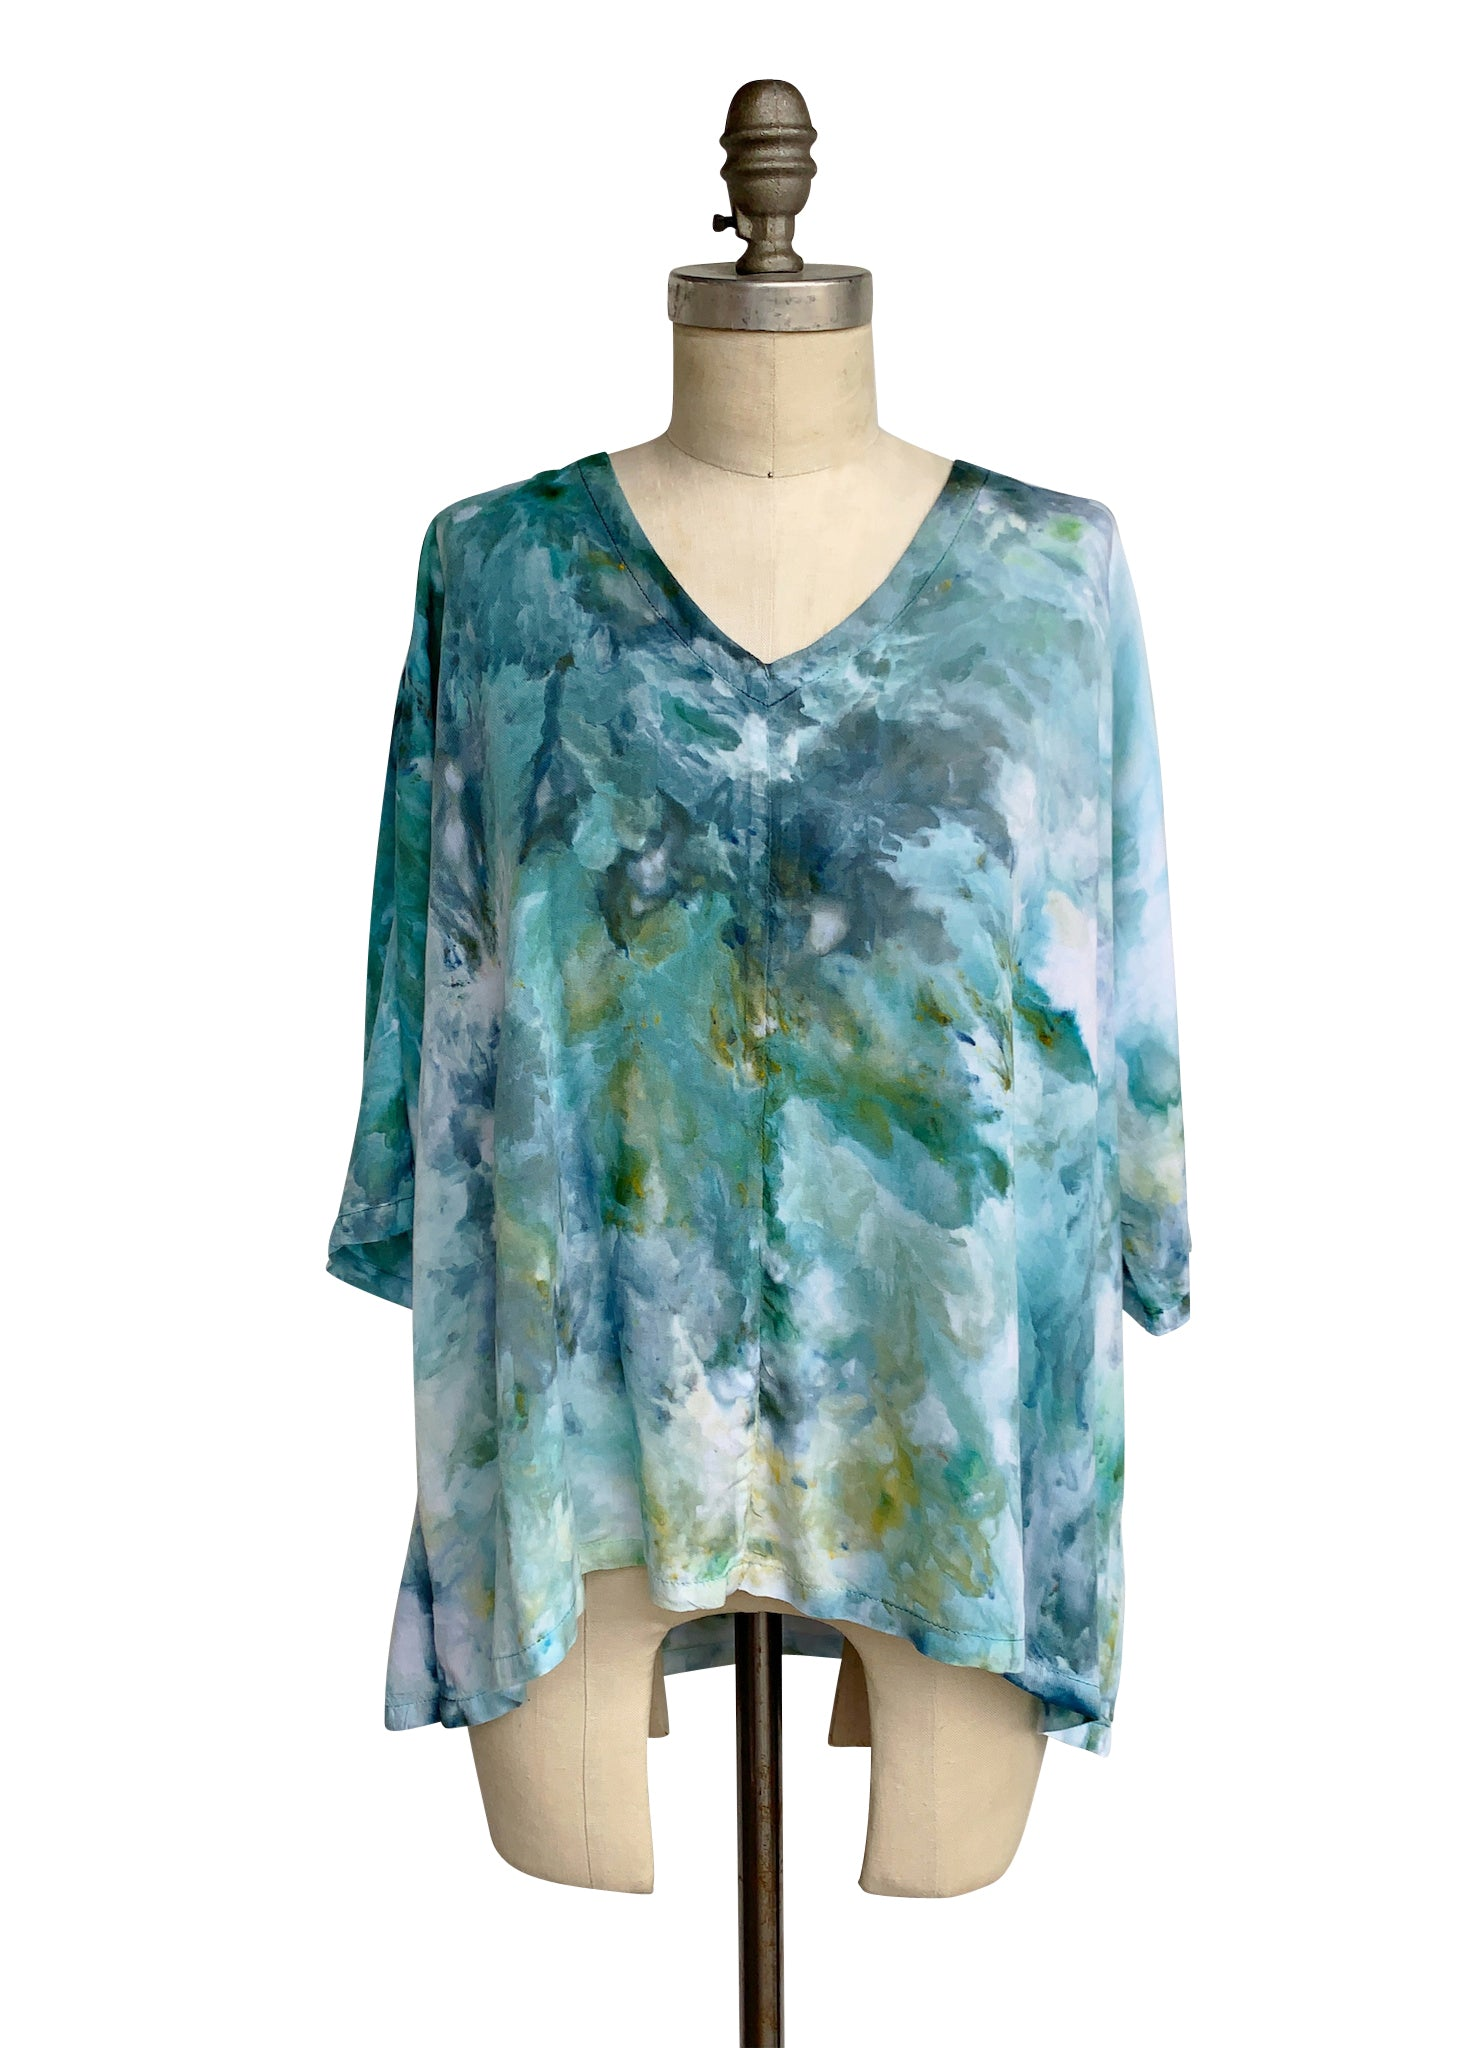 Easy Rayon Shirt in Sea Glass - Top - Dyetology